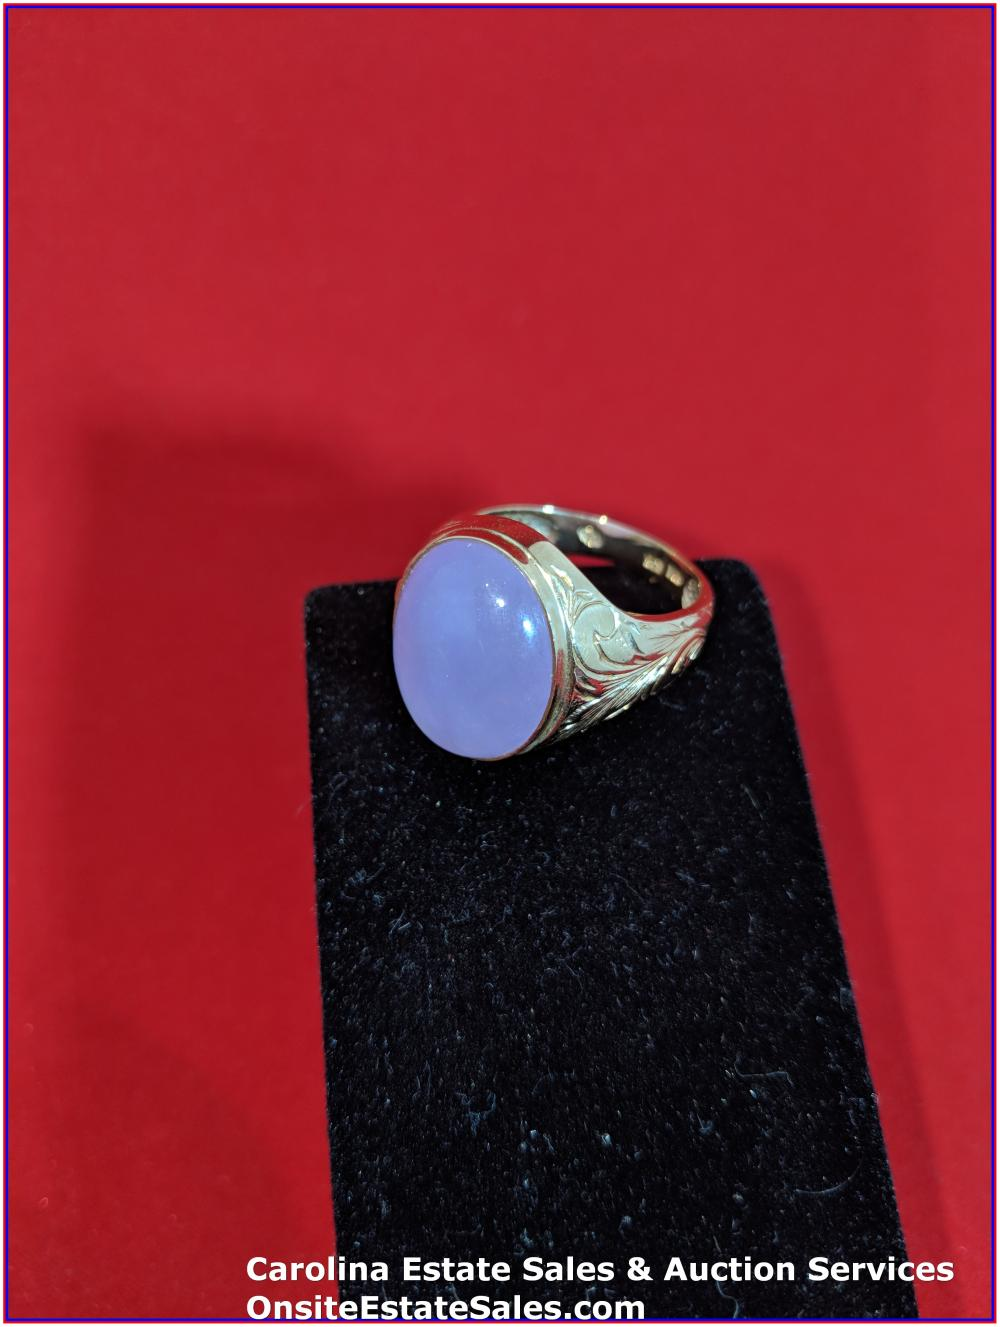 14K Gem Ring Gold 3 Grams Total Weight Includes Stone